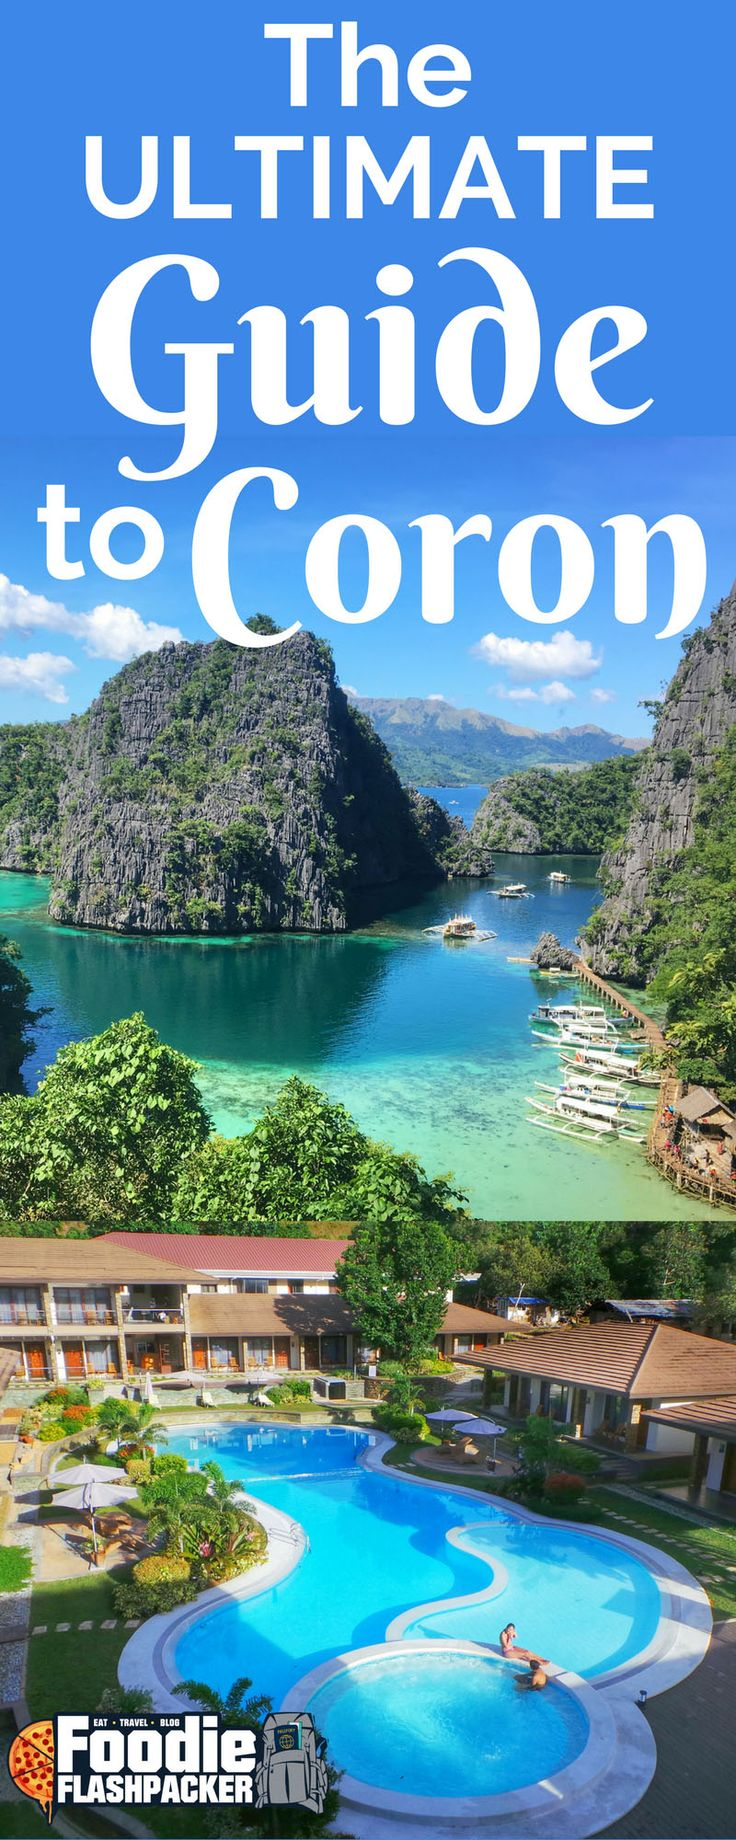 travel destination palawan island essay Top destinations bohol  the philippines nestled on a remote island in busuanga, palawan  a travel and lifestyle magazine, islands of the philippines serves .